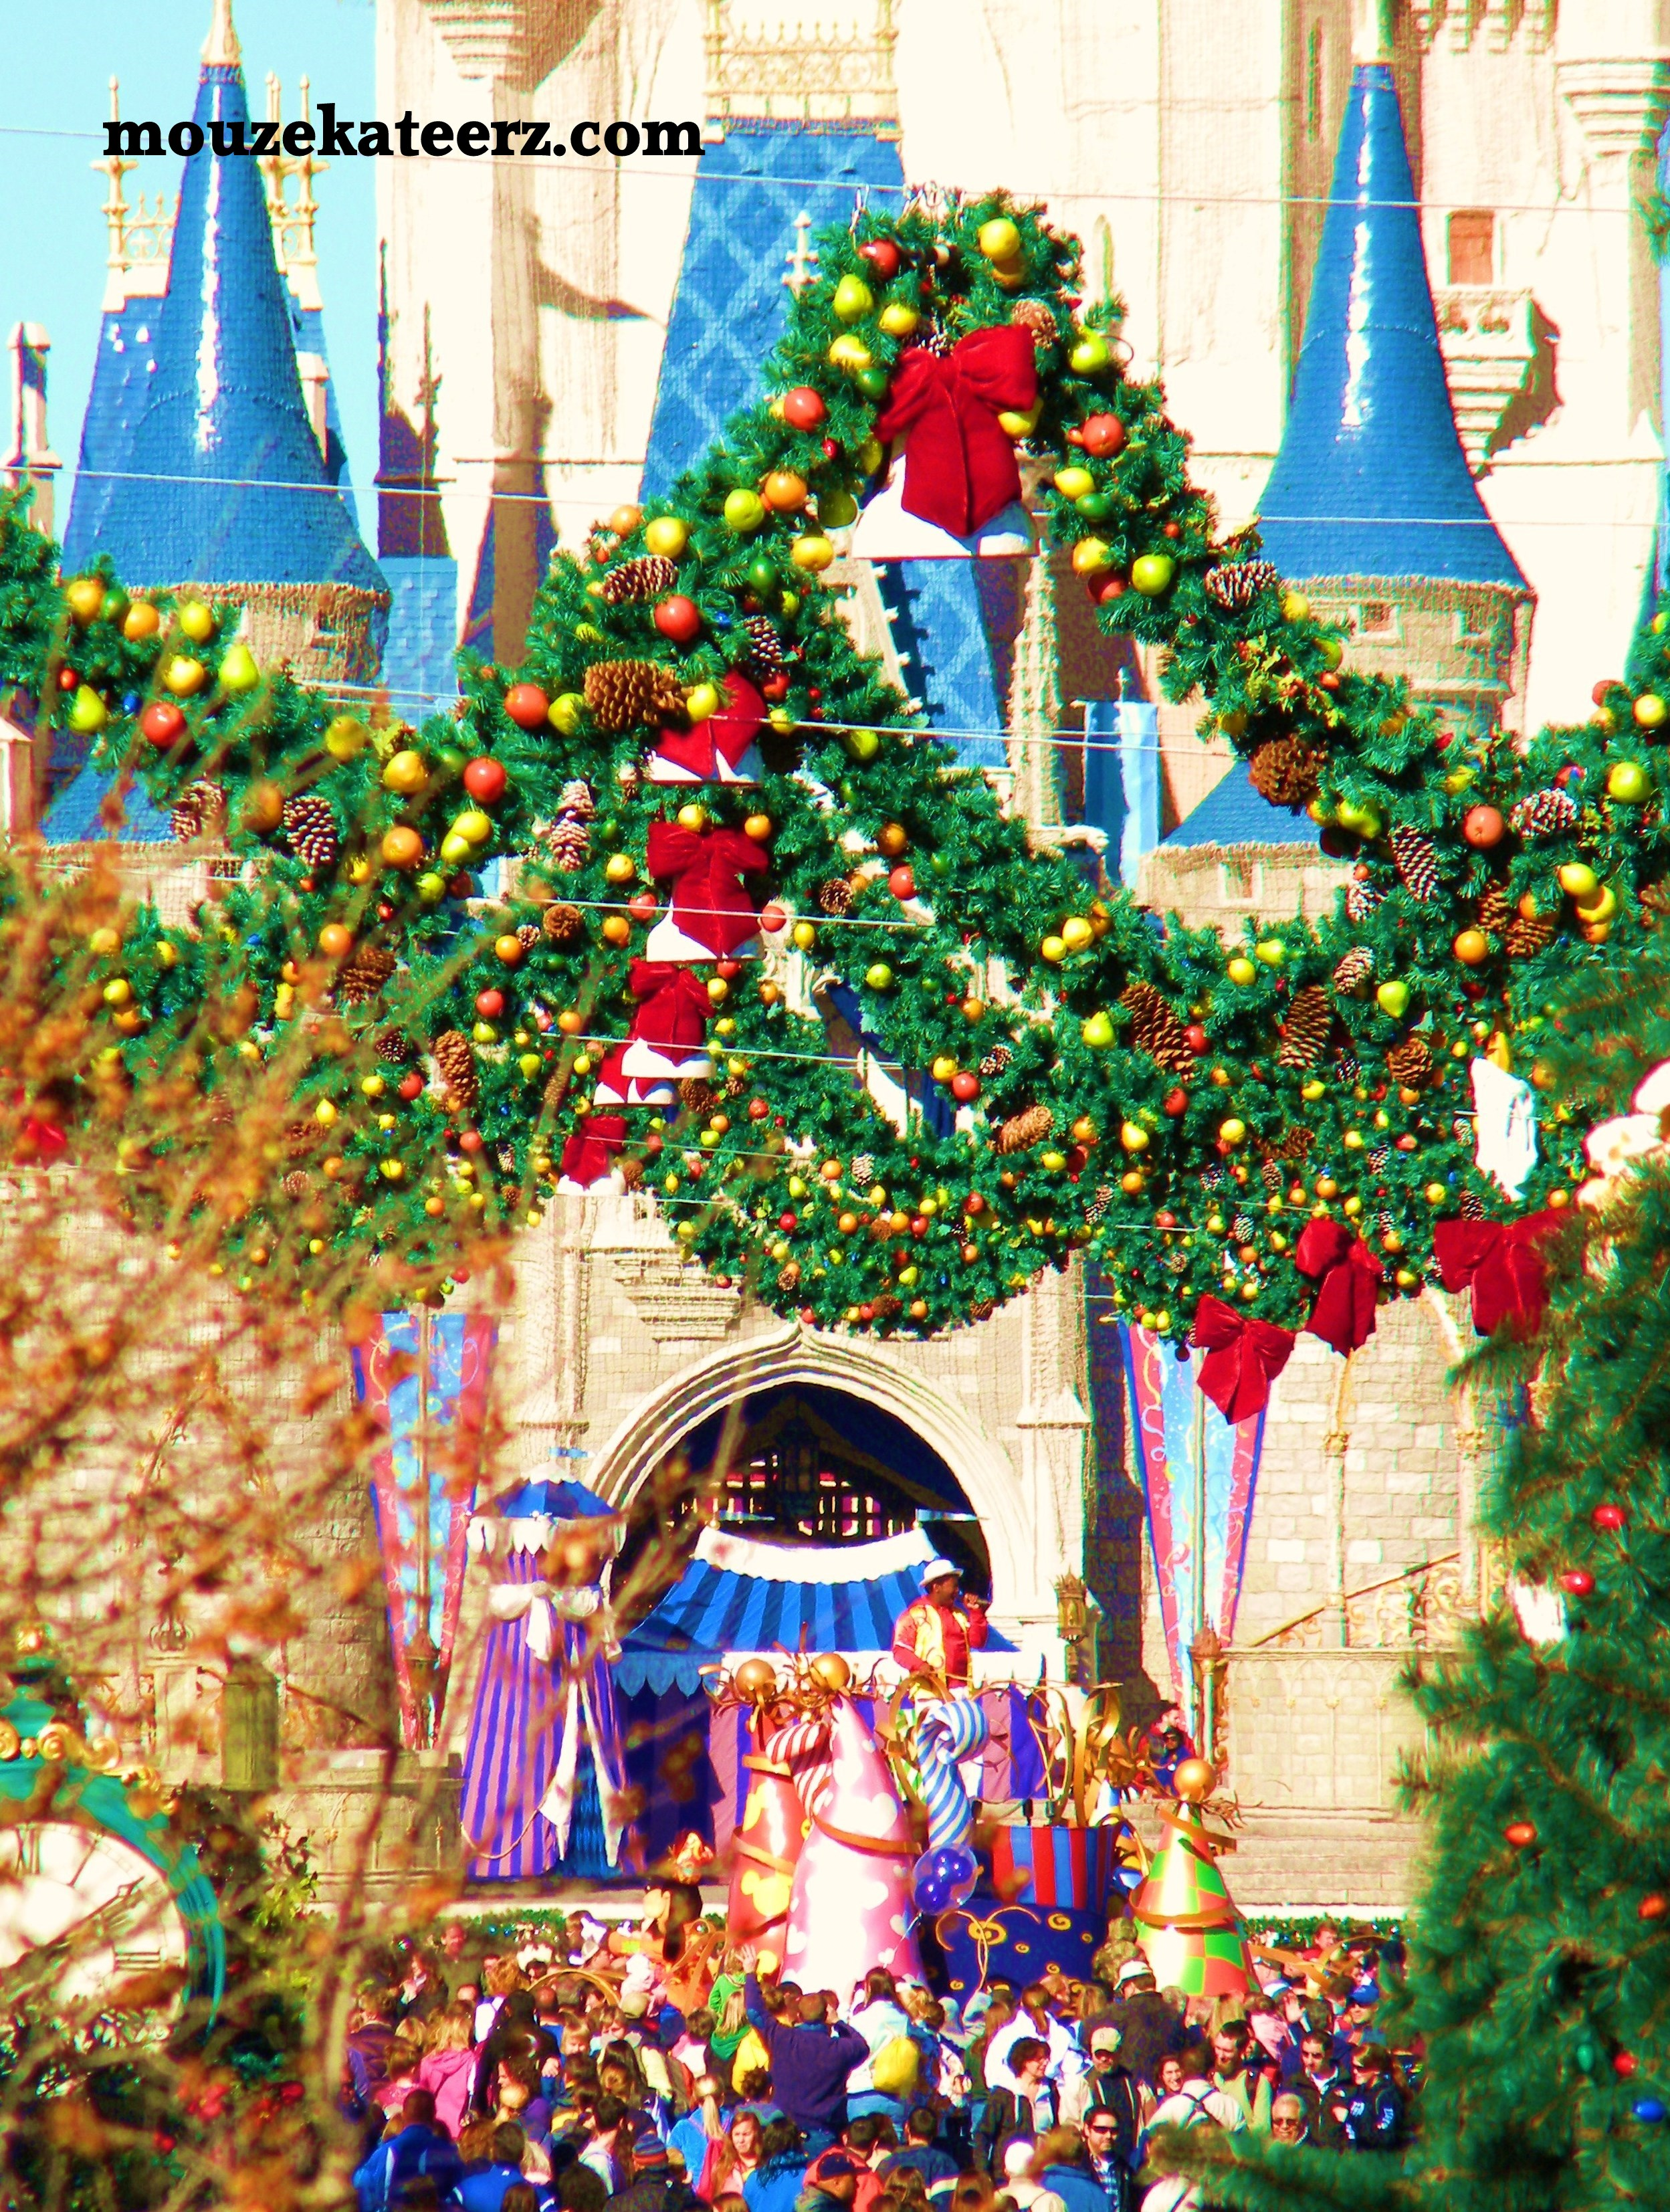 Planning A Disney Christmas Vacation Here S The Crowded